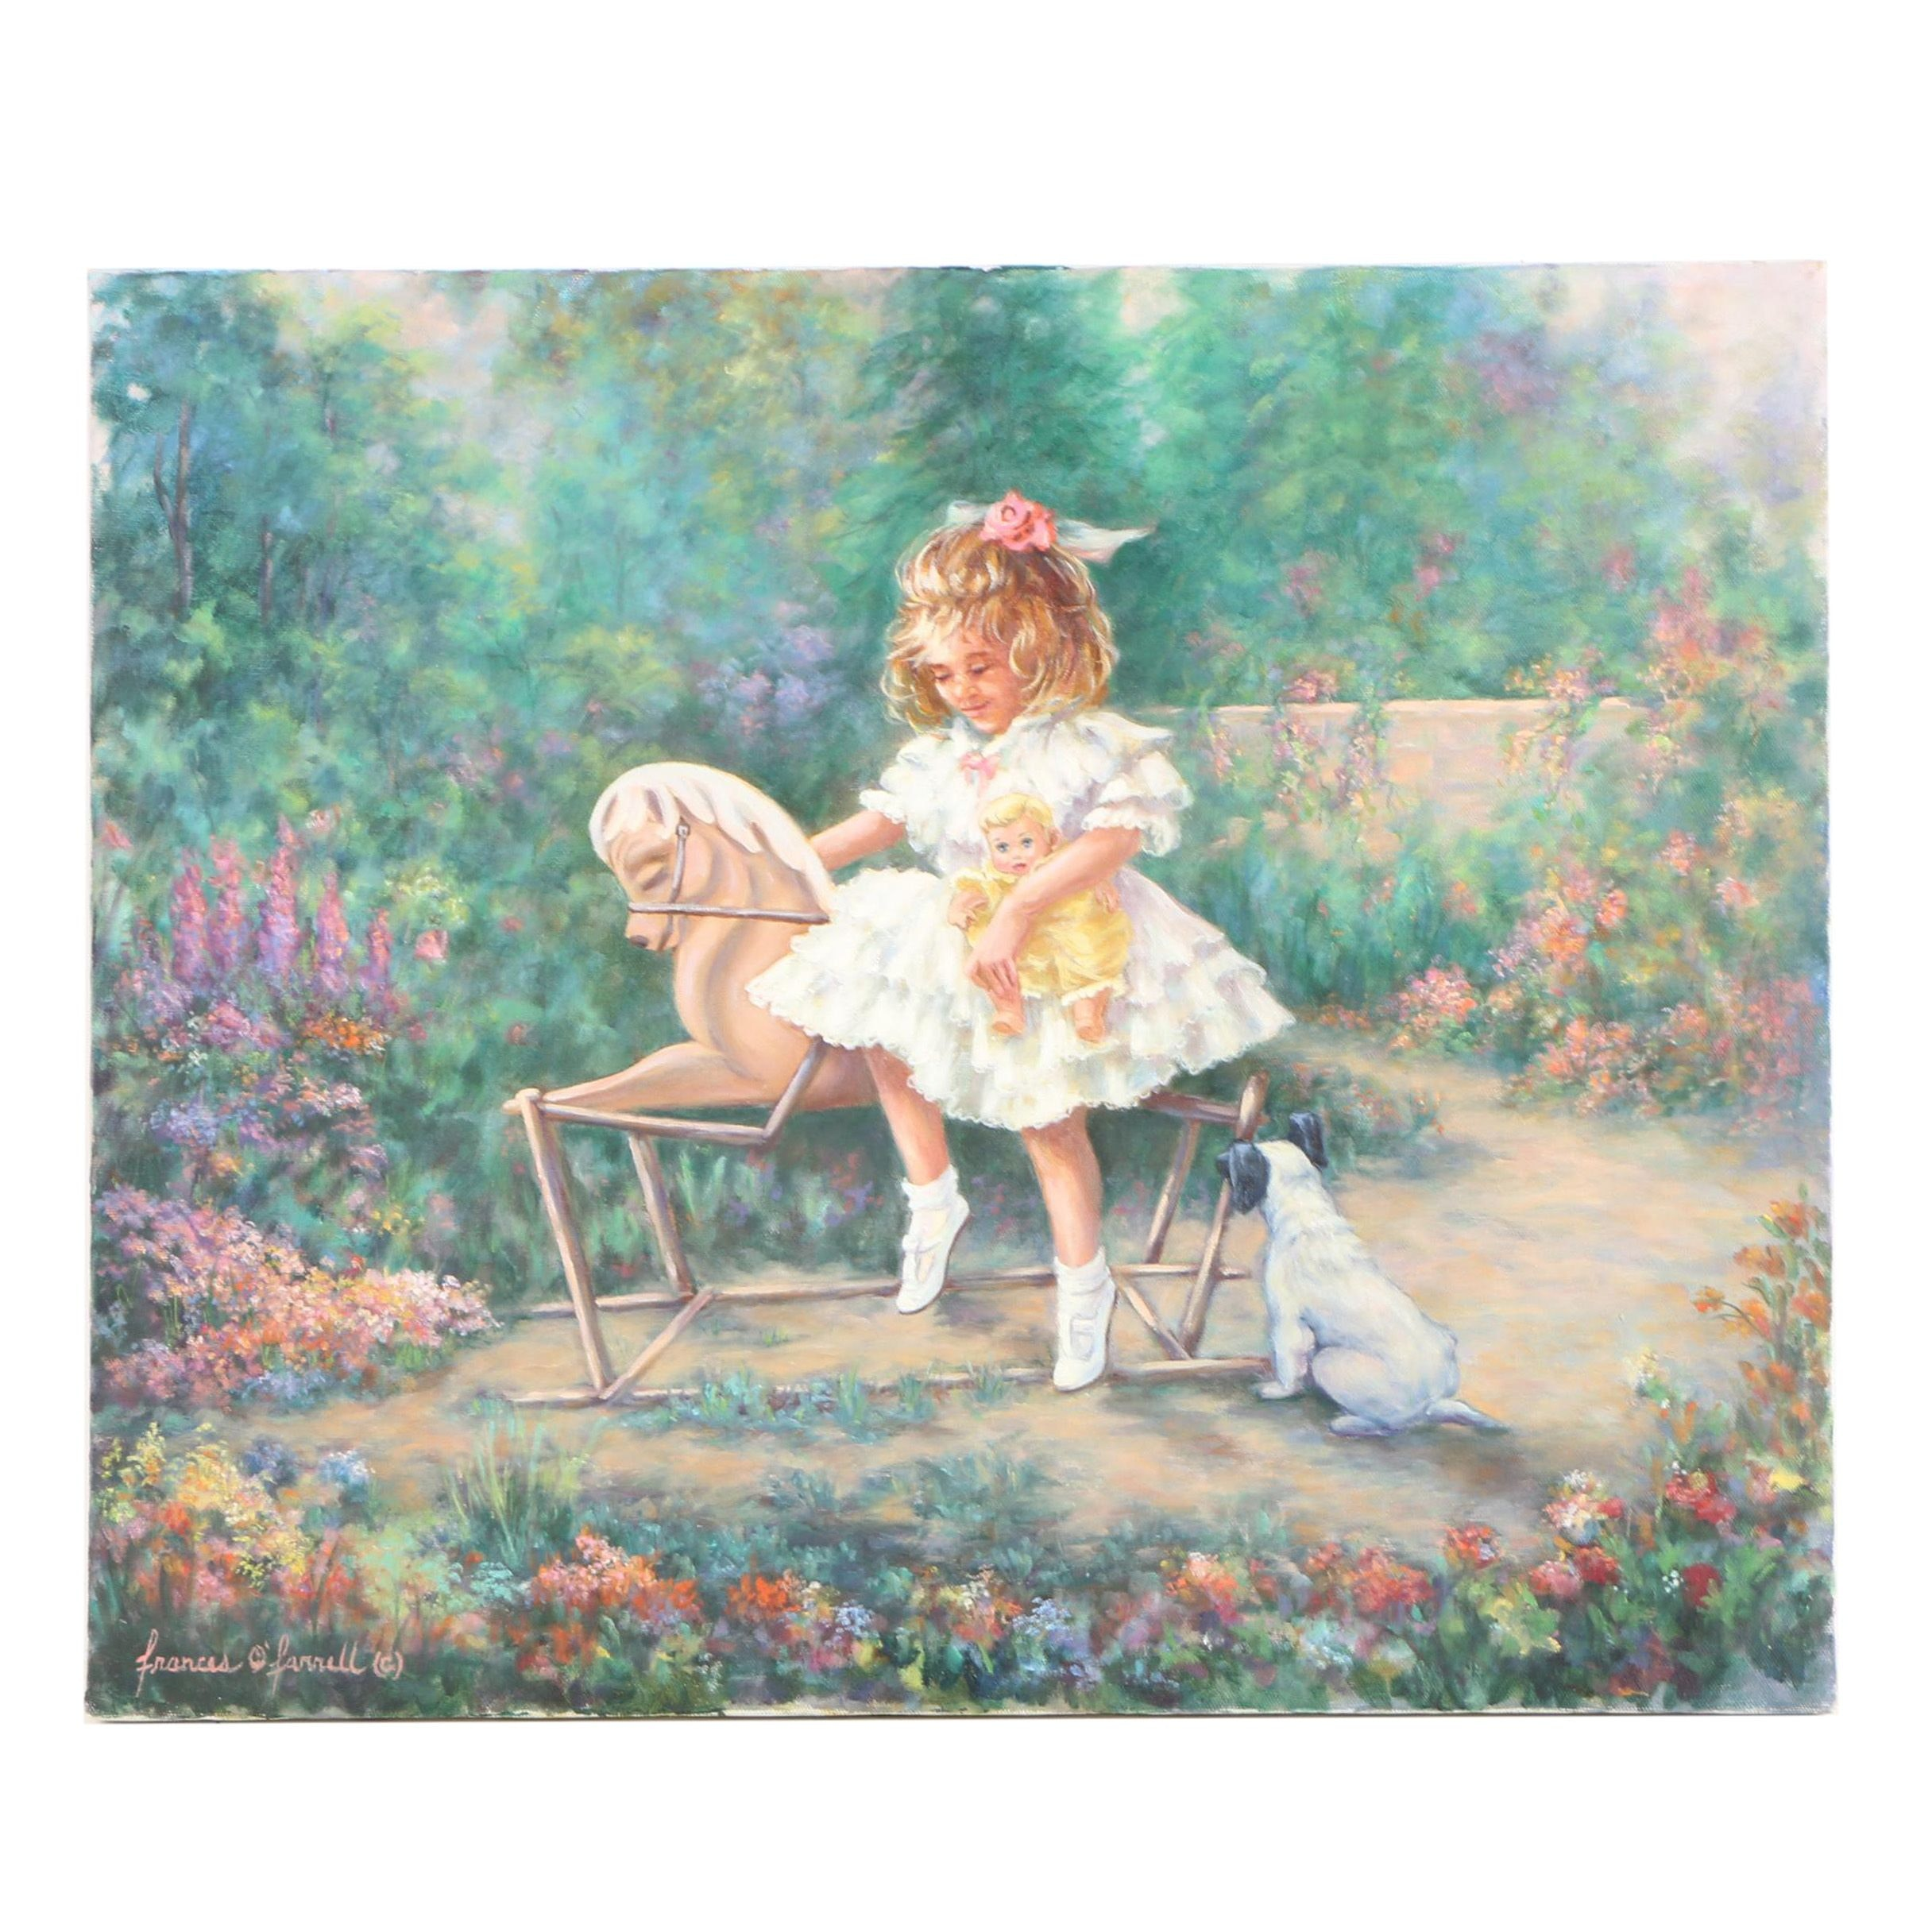 Frances O'Farrell Oil Painting of Child on Rocking Horse